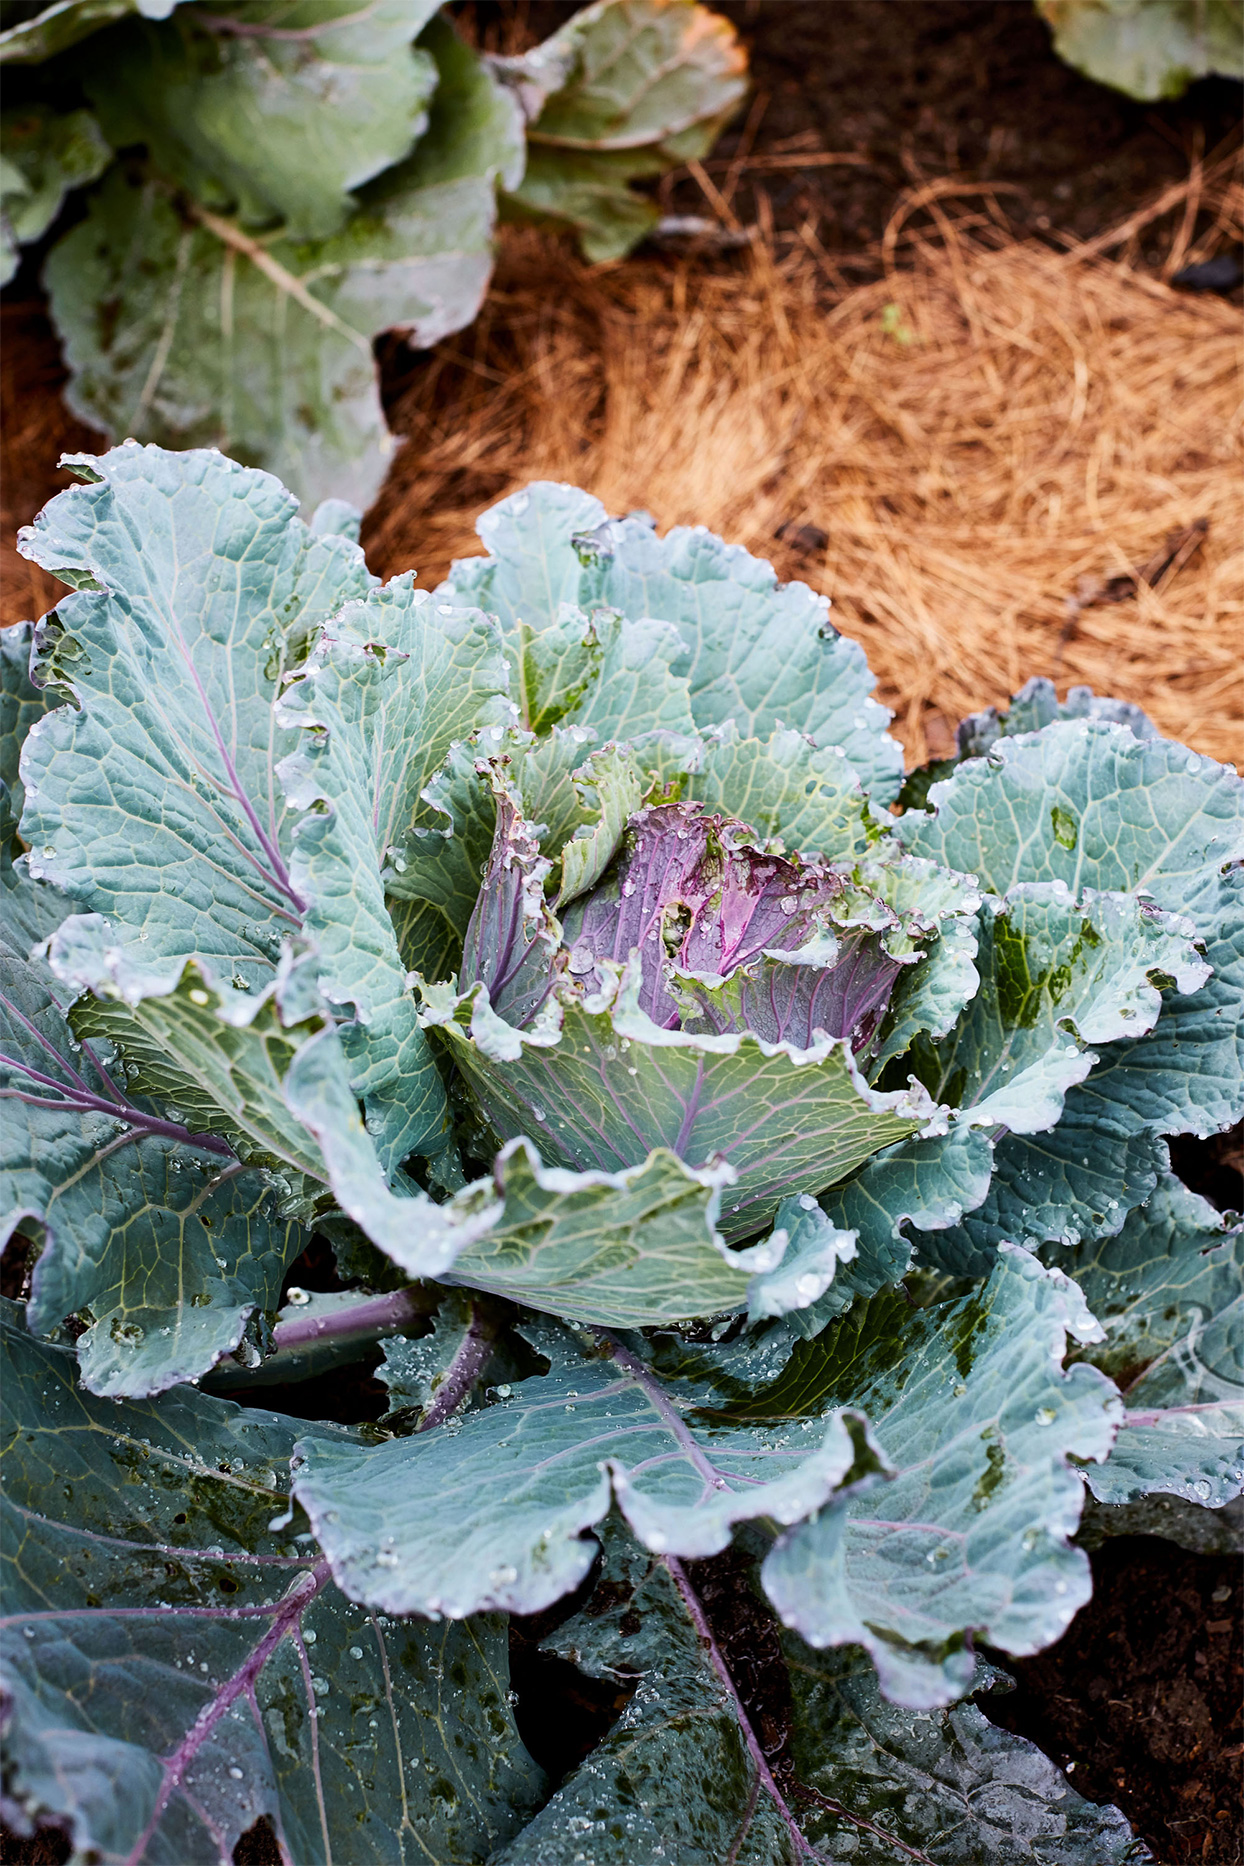 caraflex deadon cabbage with water droplets